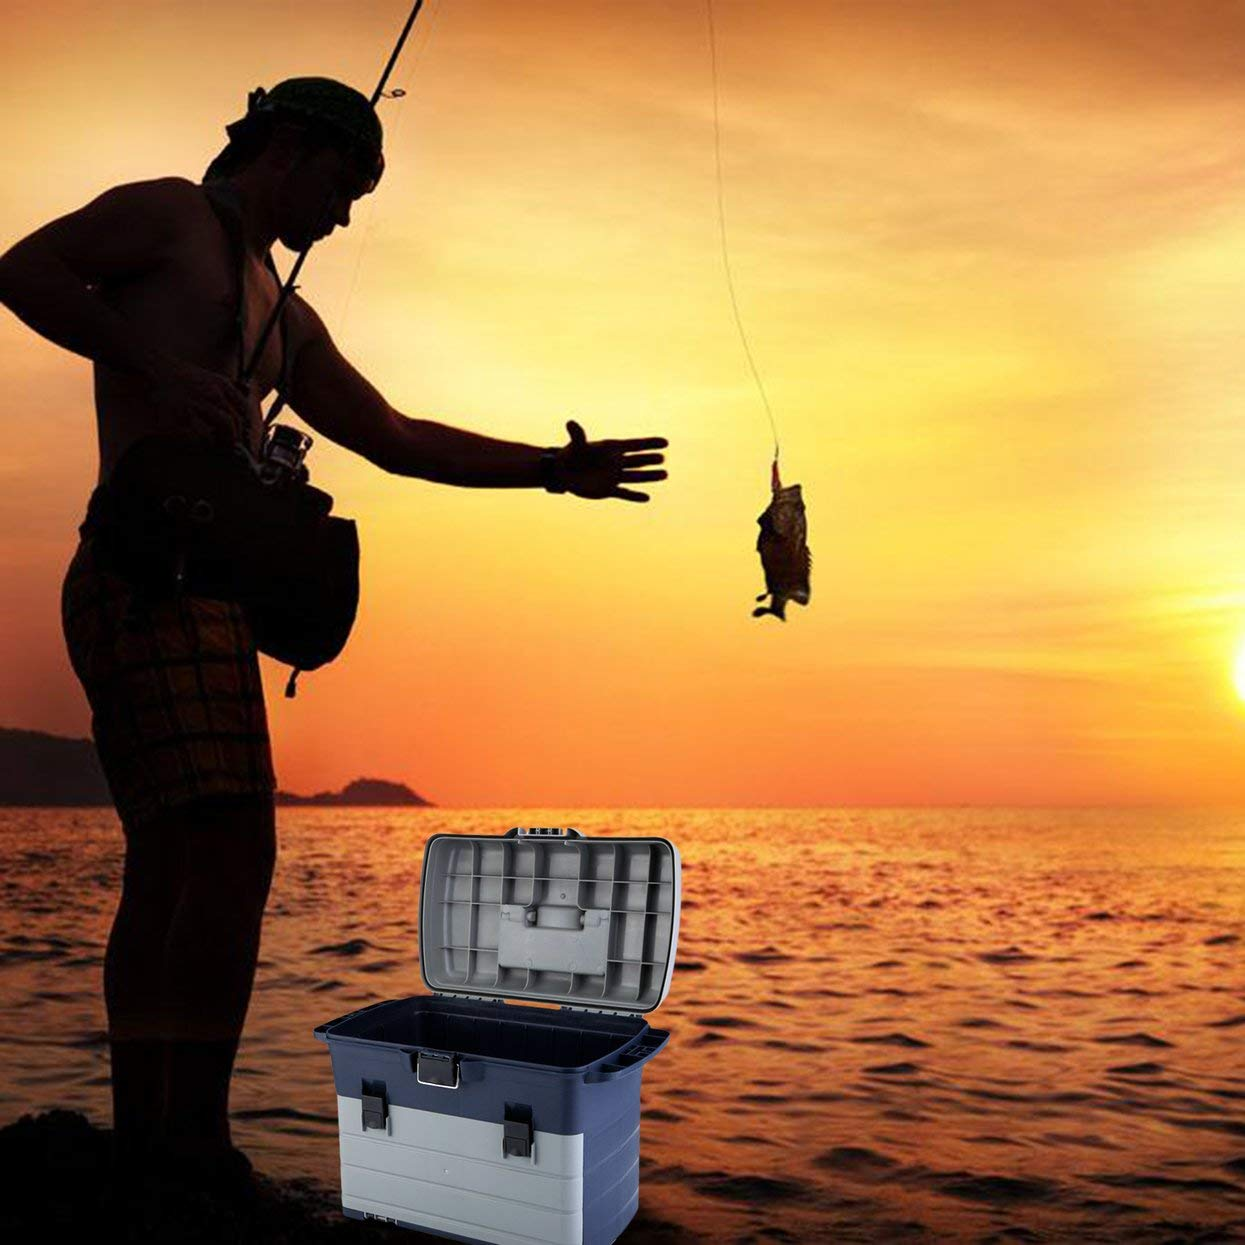 Heavy Duty Fishing Tackle Box 3 Layers Removable Trays Storage Organizer Case Tool Fishing Accessories Lures Bait Storage Box by ToGames (Image #3)